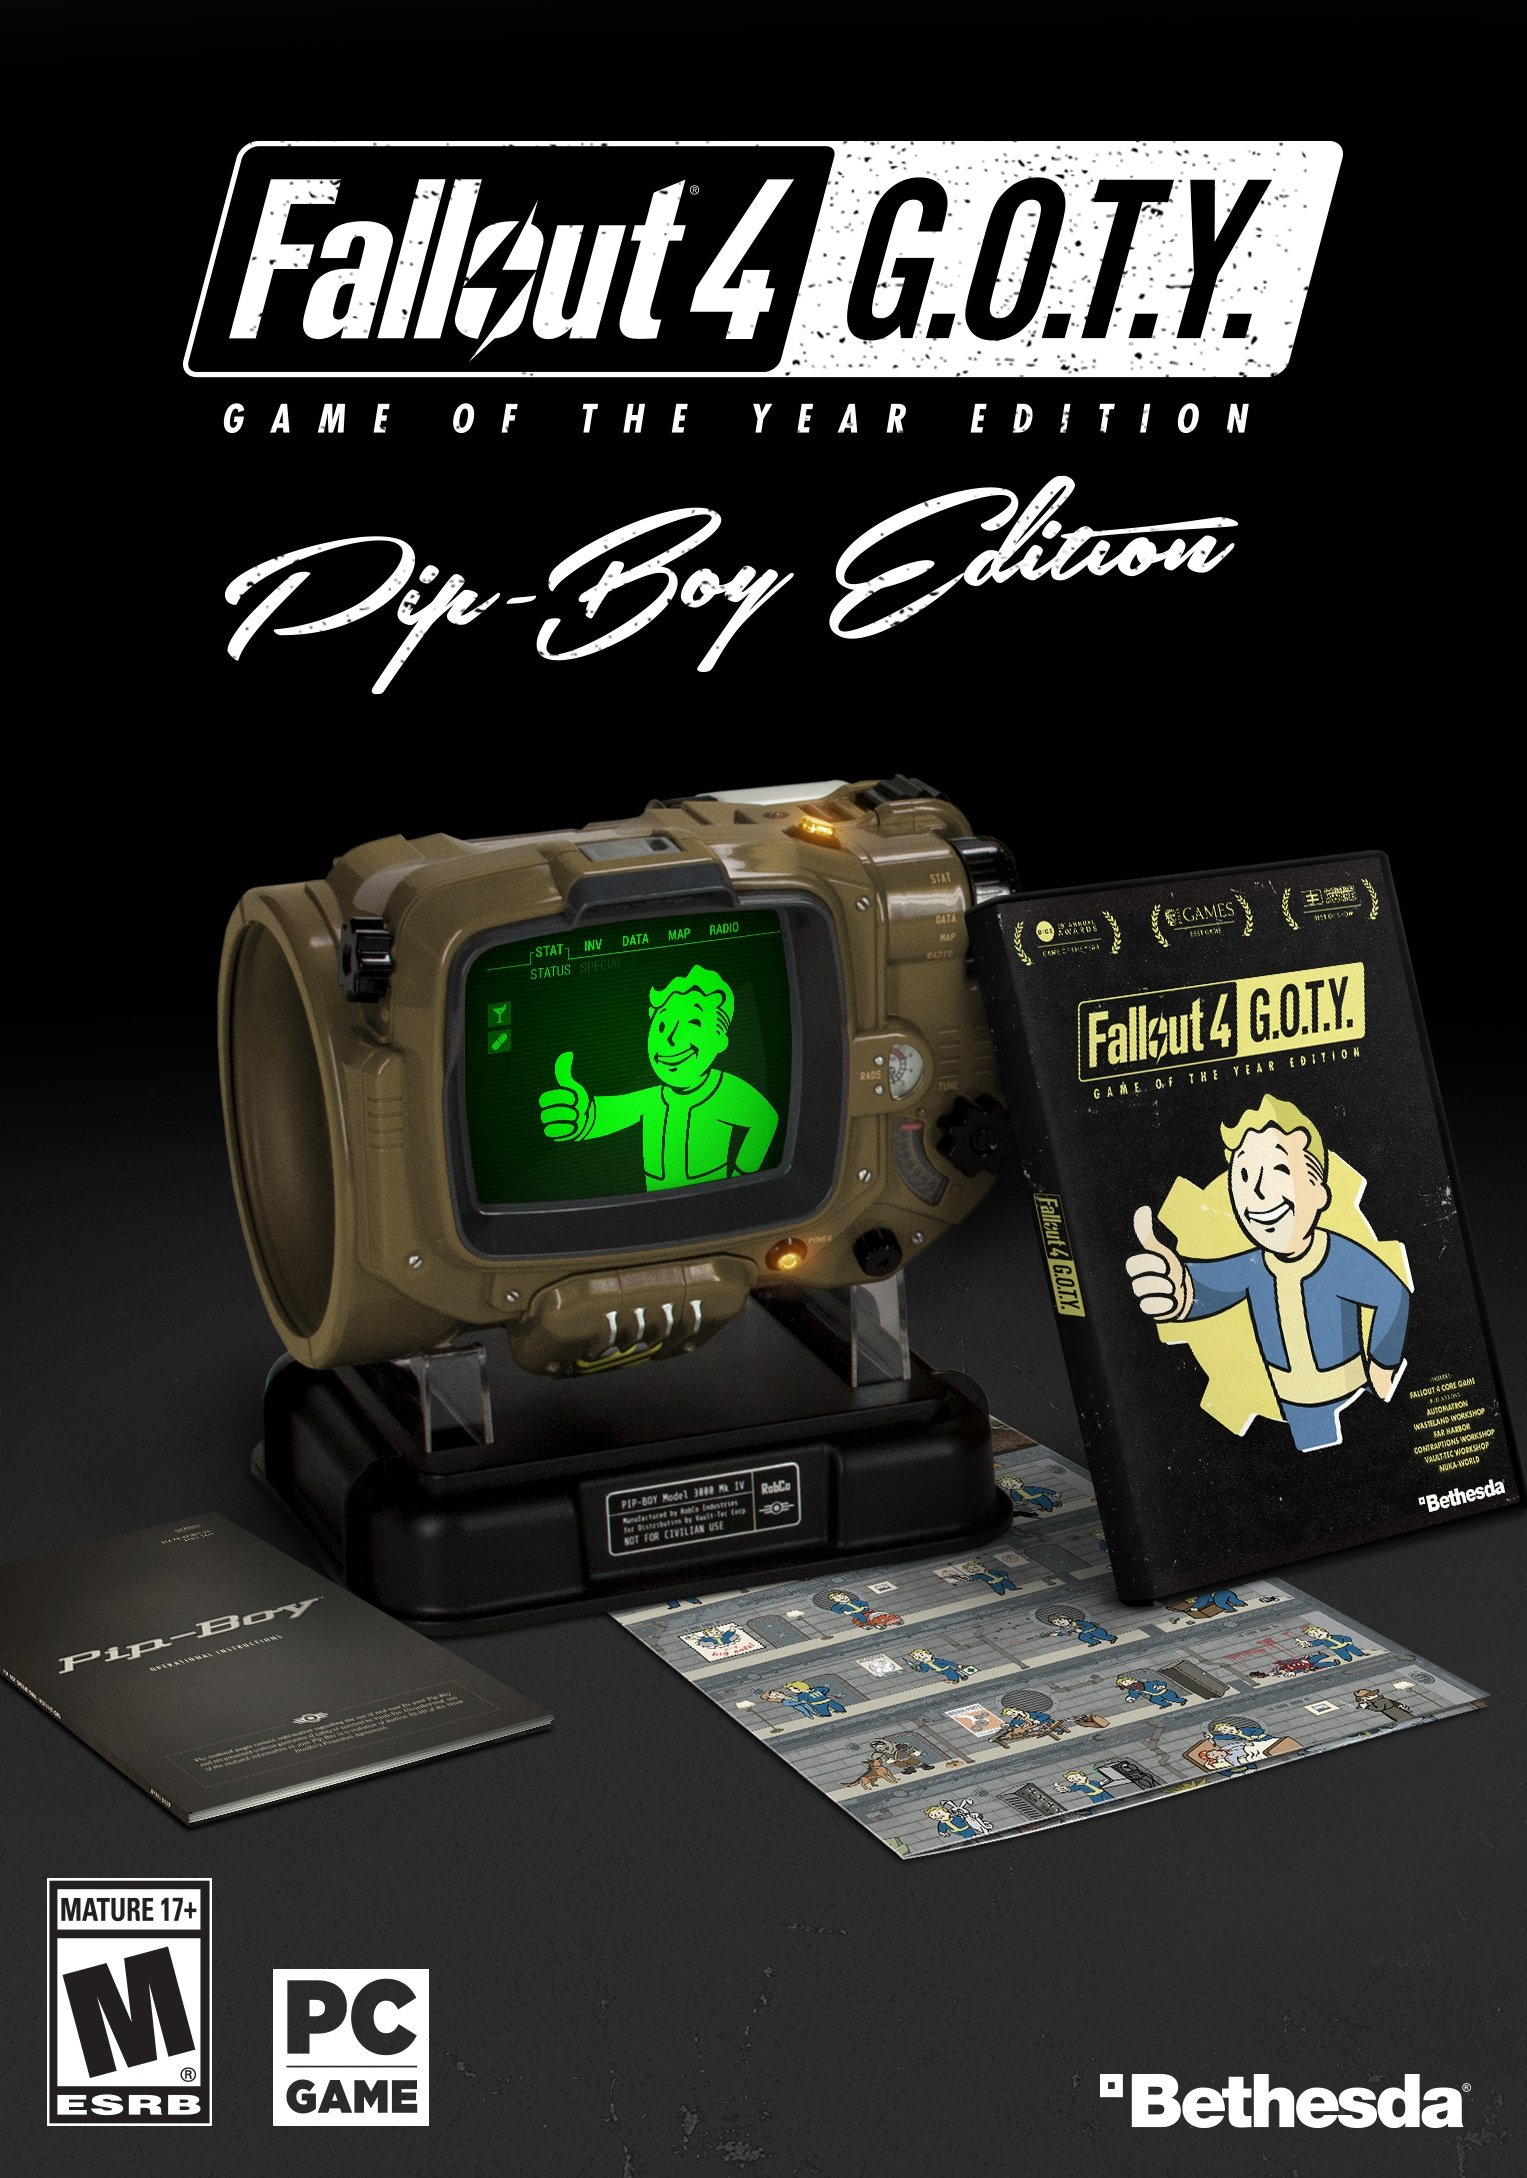 Fallout 4 release date pc in Sydney